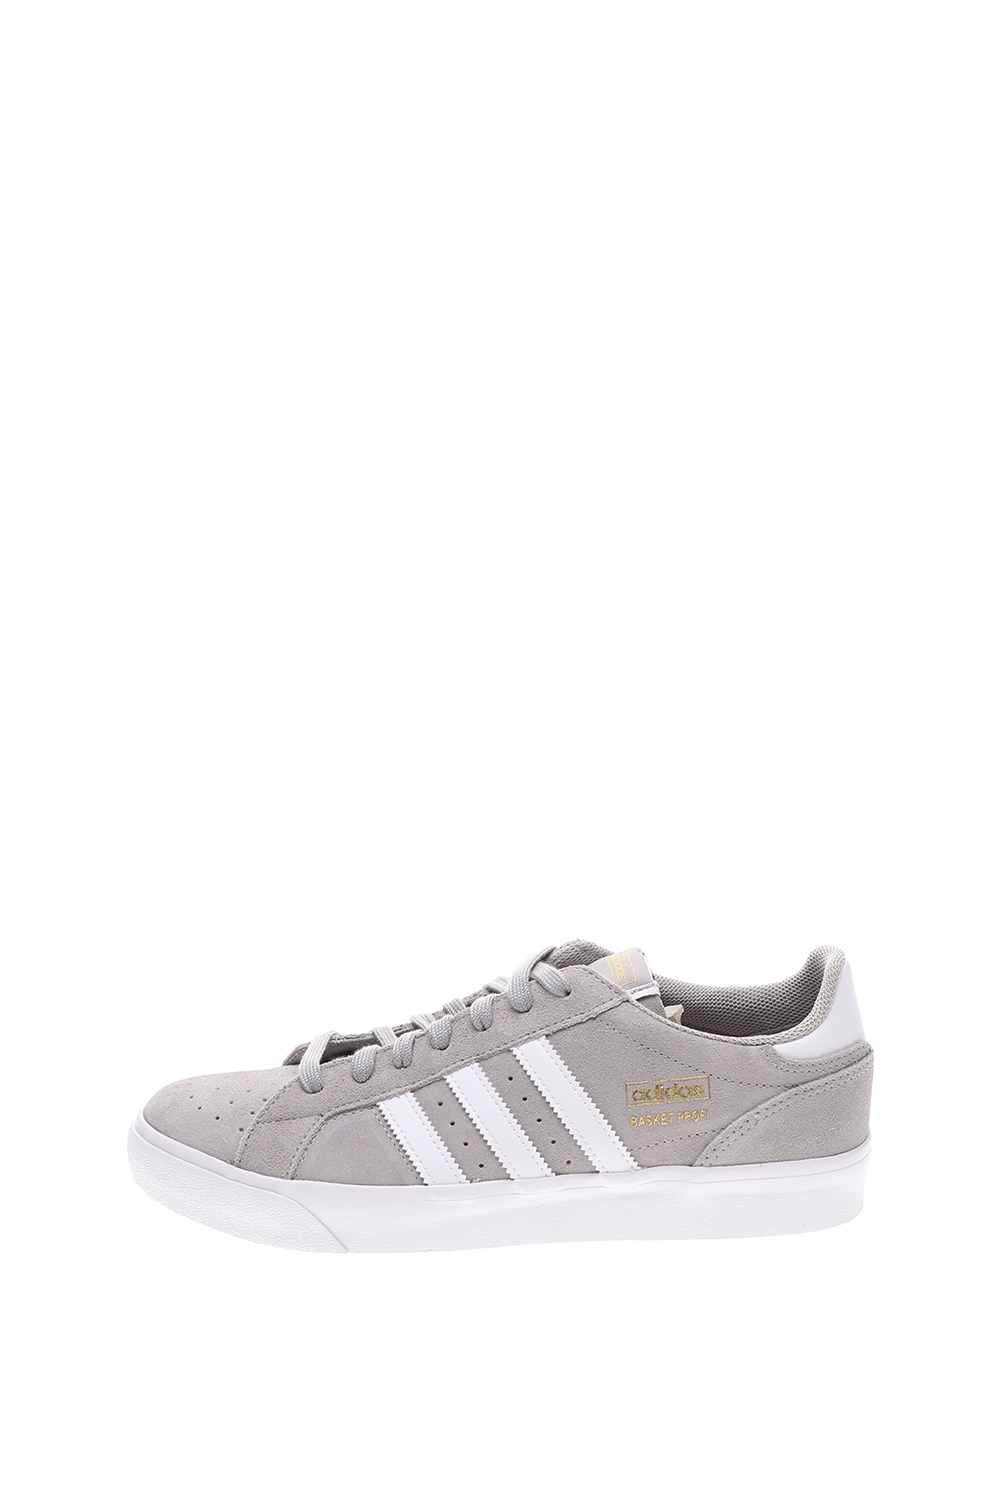 adidas Originals - Ανδρικά sneakers adidas Originals BASKET PROFI LO γκρι